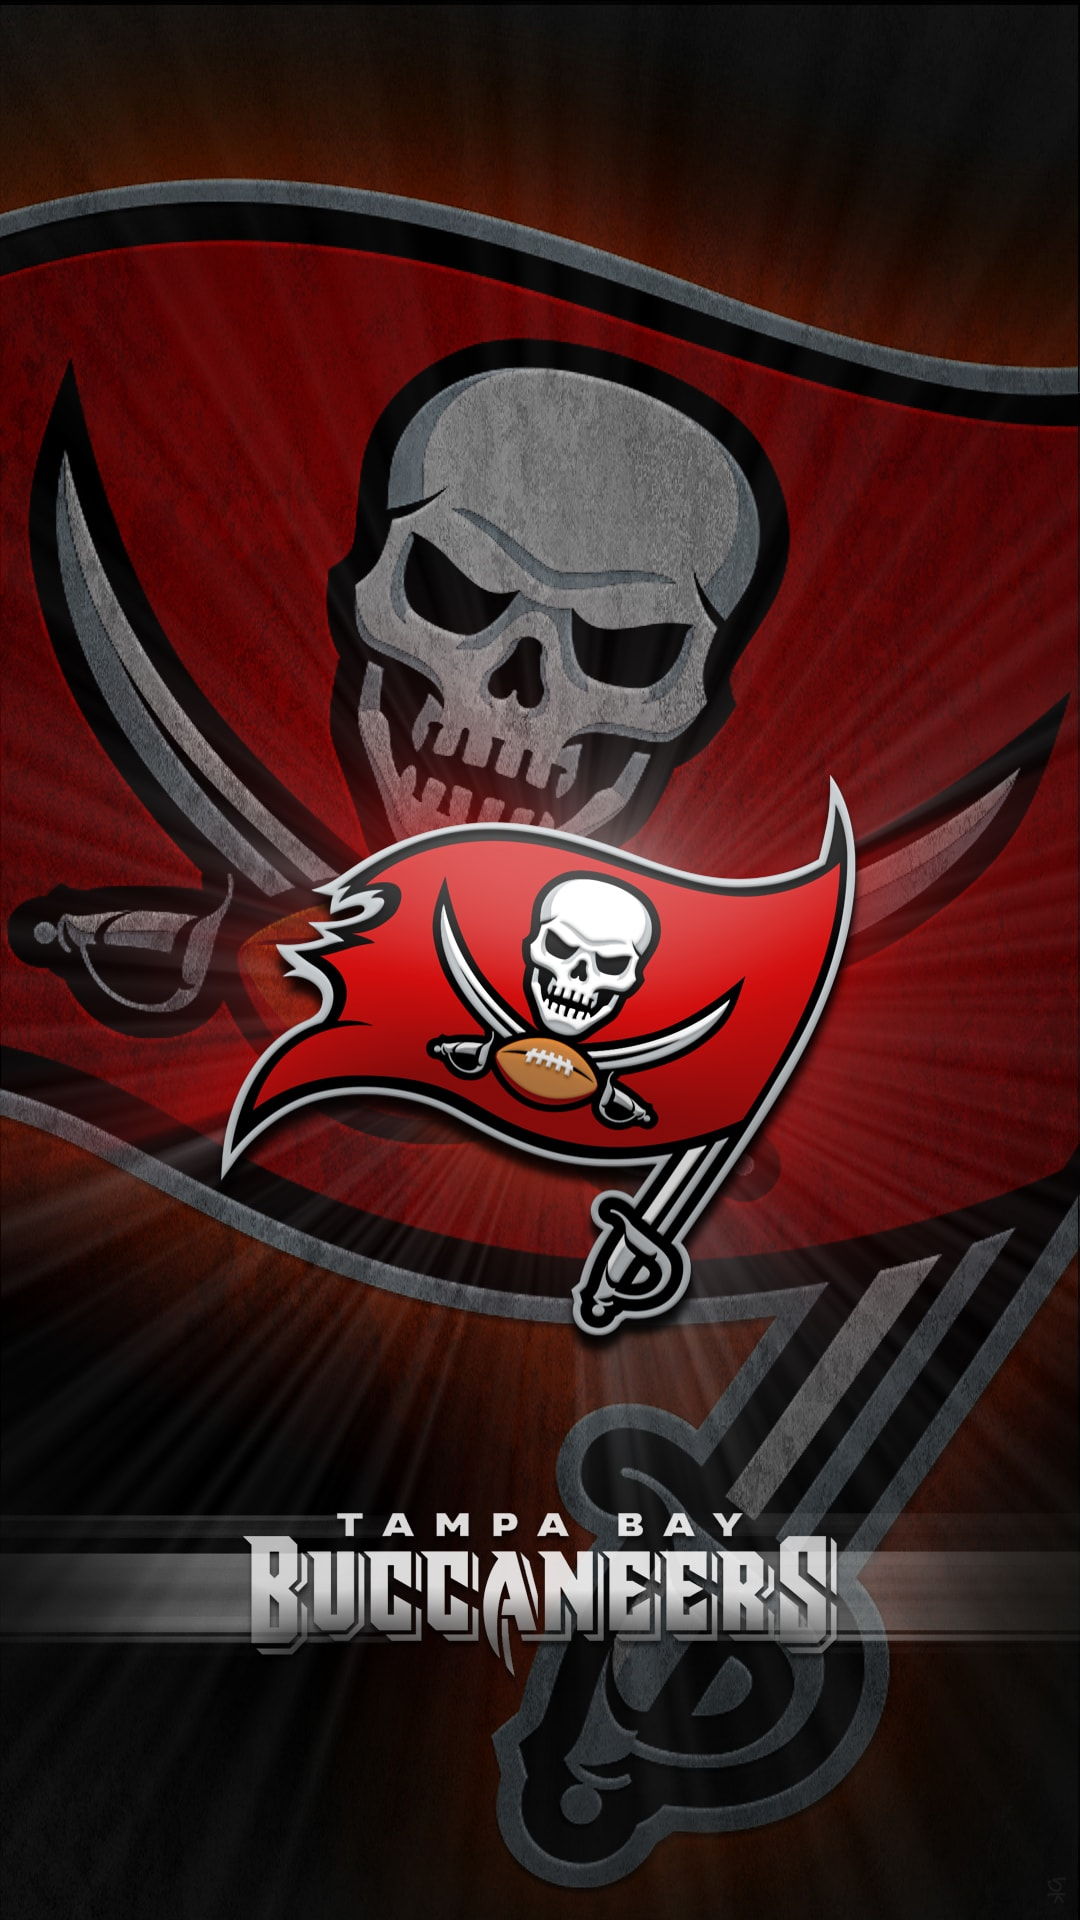 Tampa Bay Buccaneers Wallpapers Kolpaper Awesome Free Hd Wallpapers